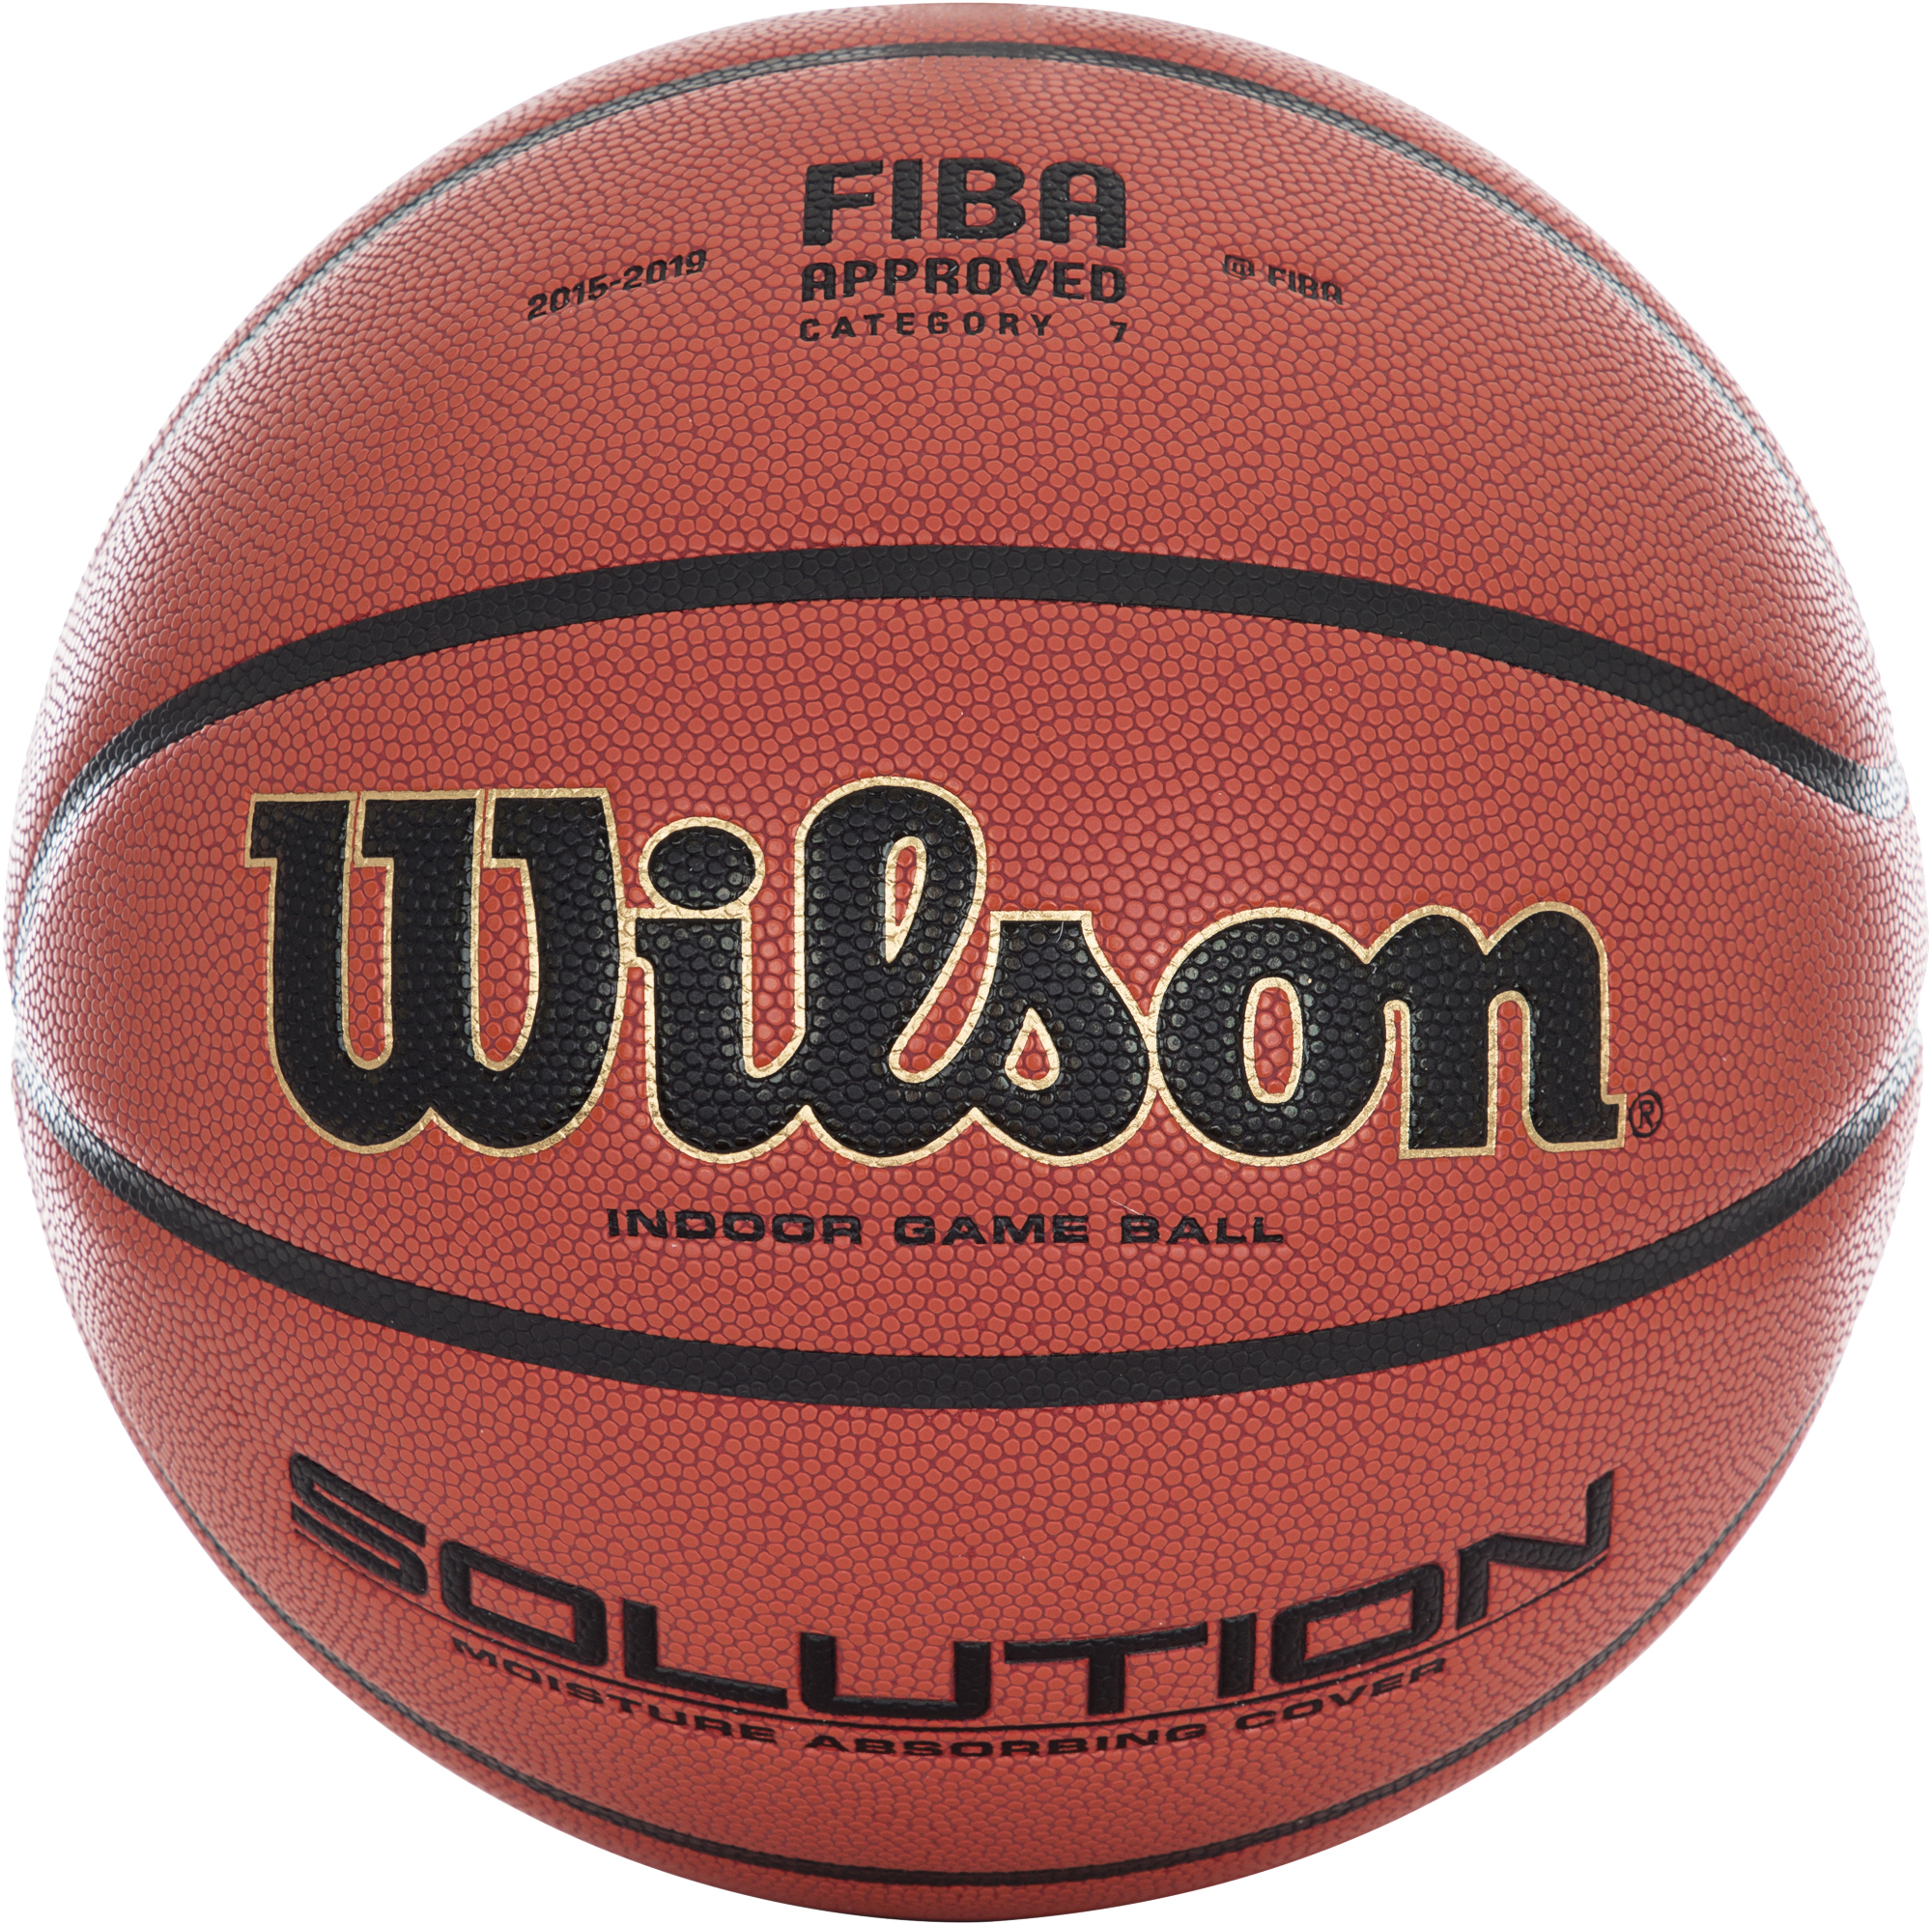 Wilson Мяч баскетбольный SOLUTION OFFICIAL GAME BALL